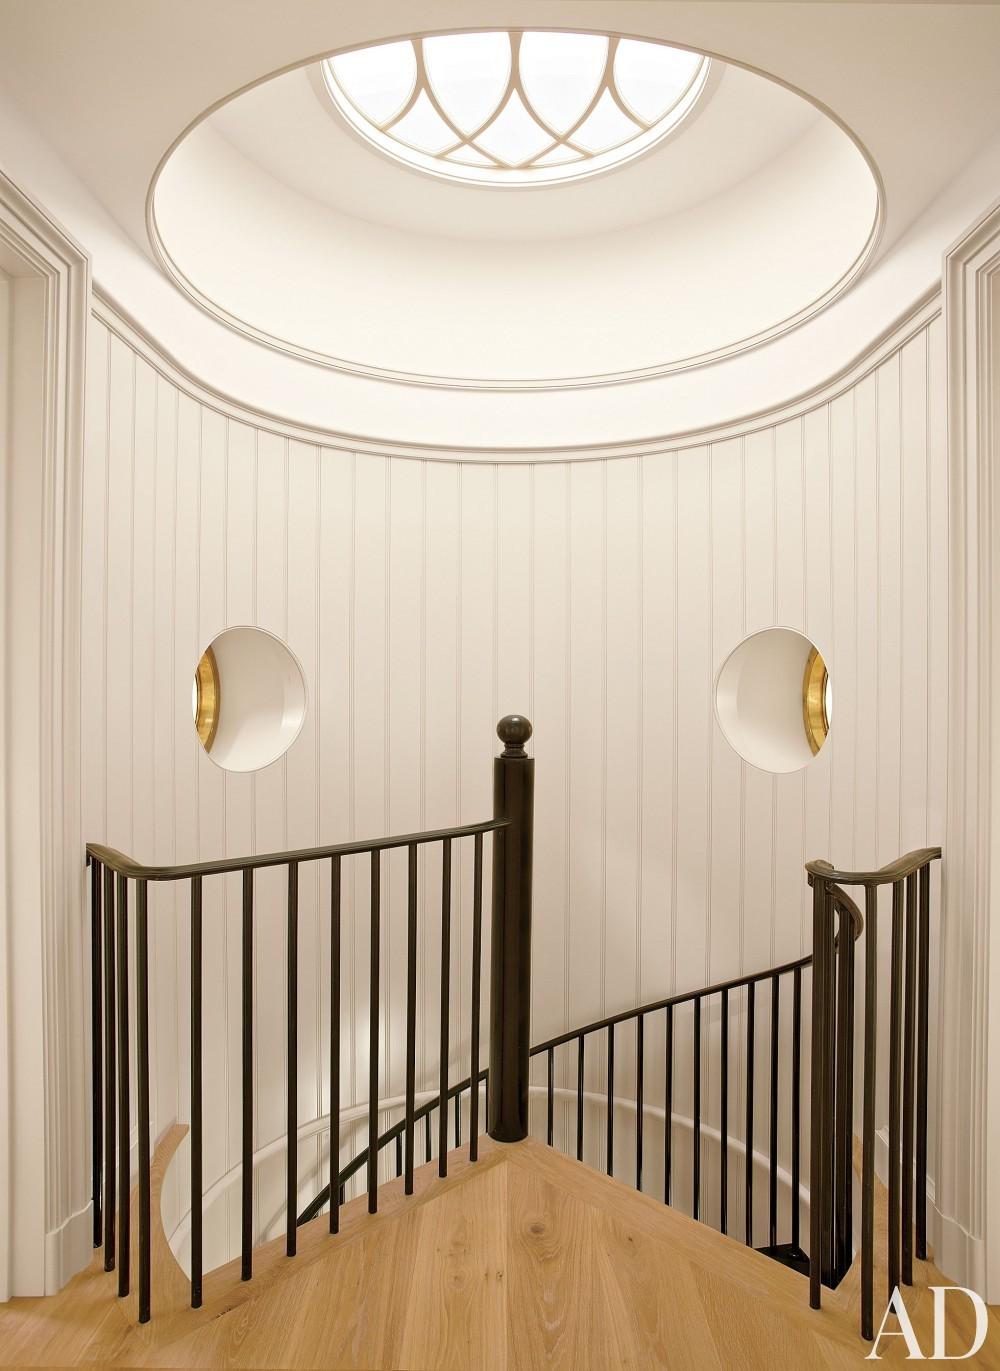 Beach Staircase/Hallway by Matthew Patrick Smyth and Peter Pennoyer Architects in The Hamptons